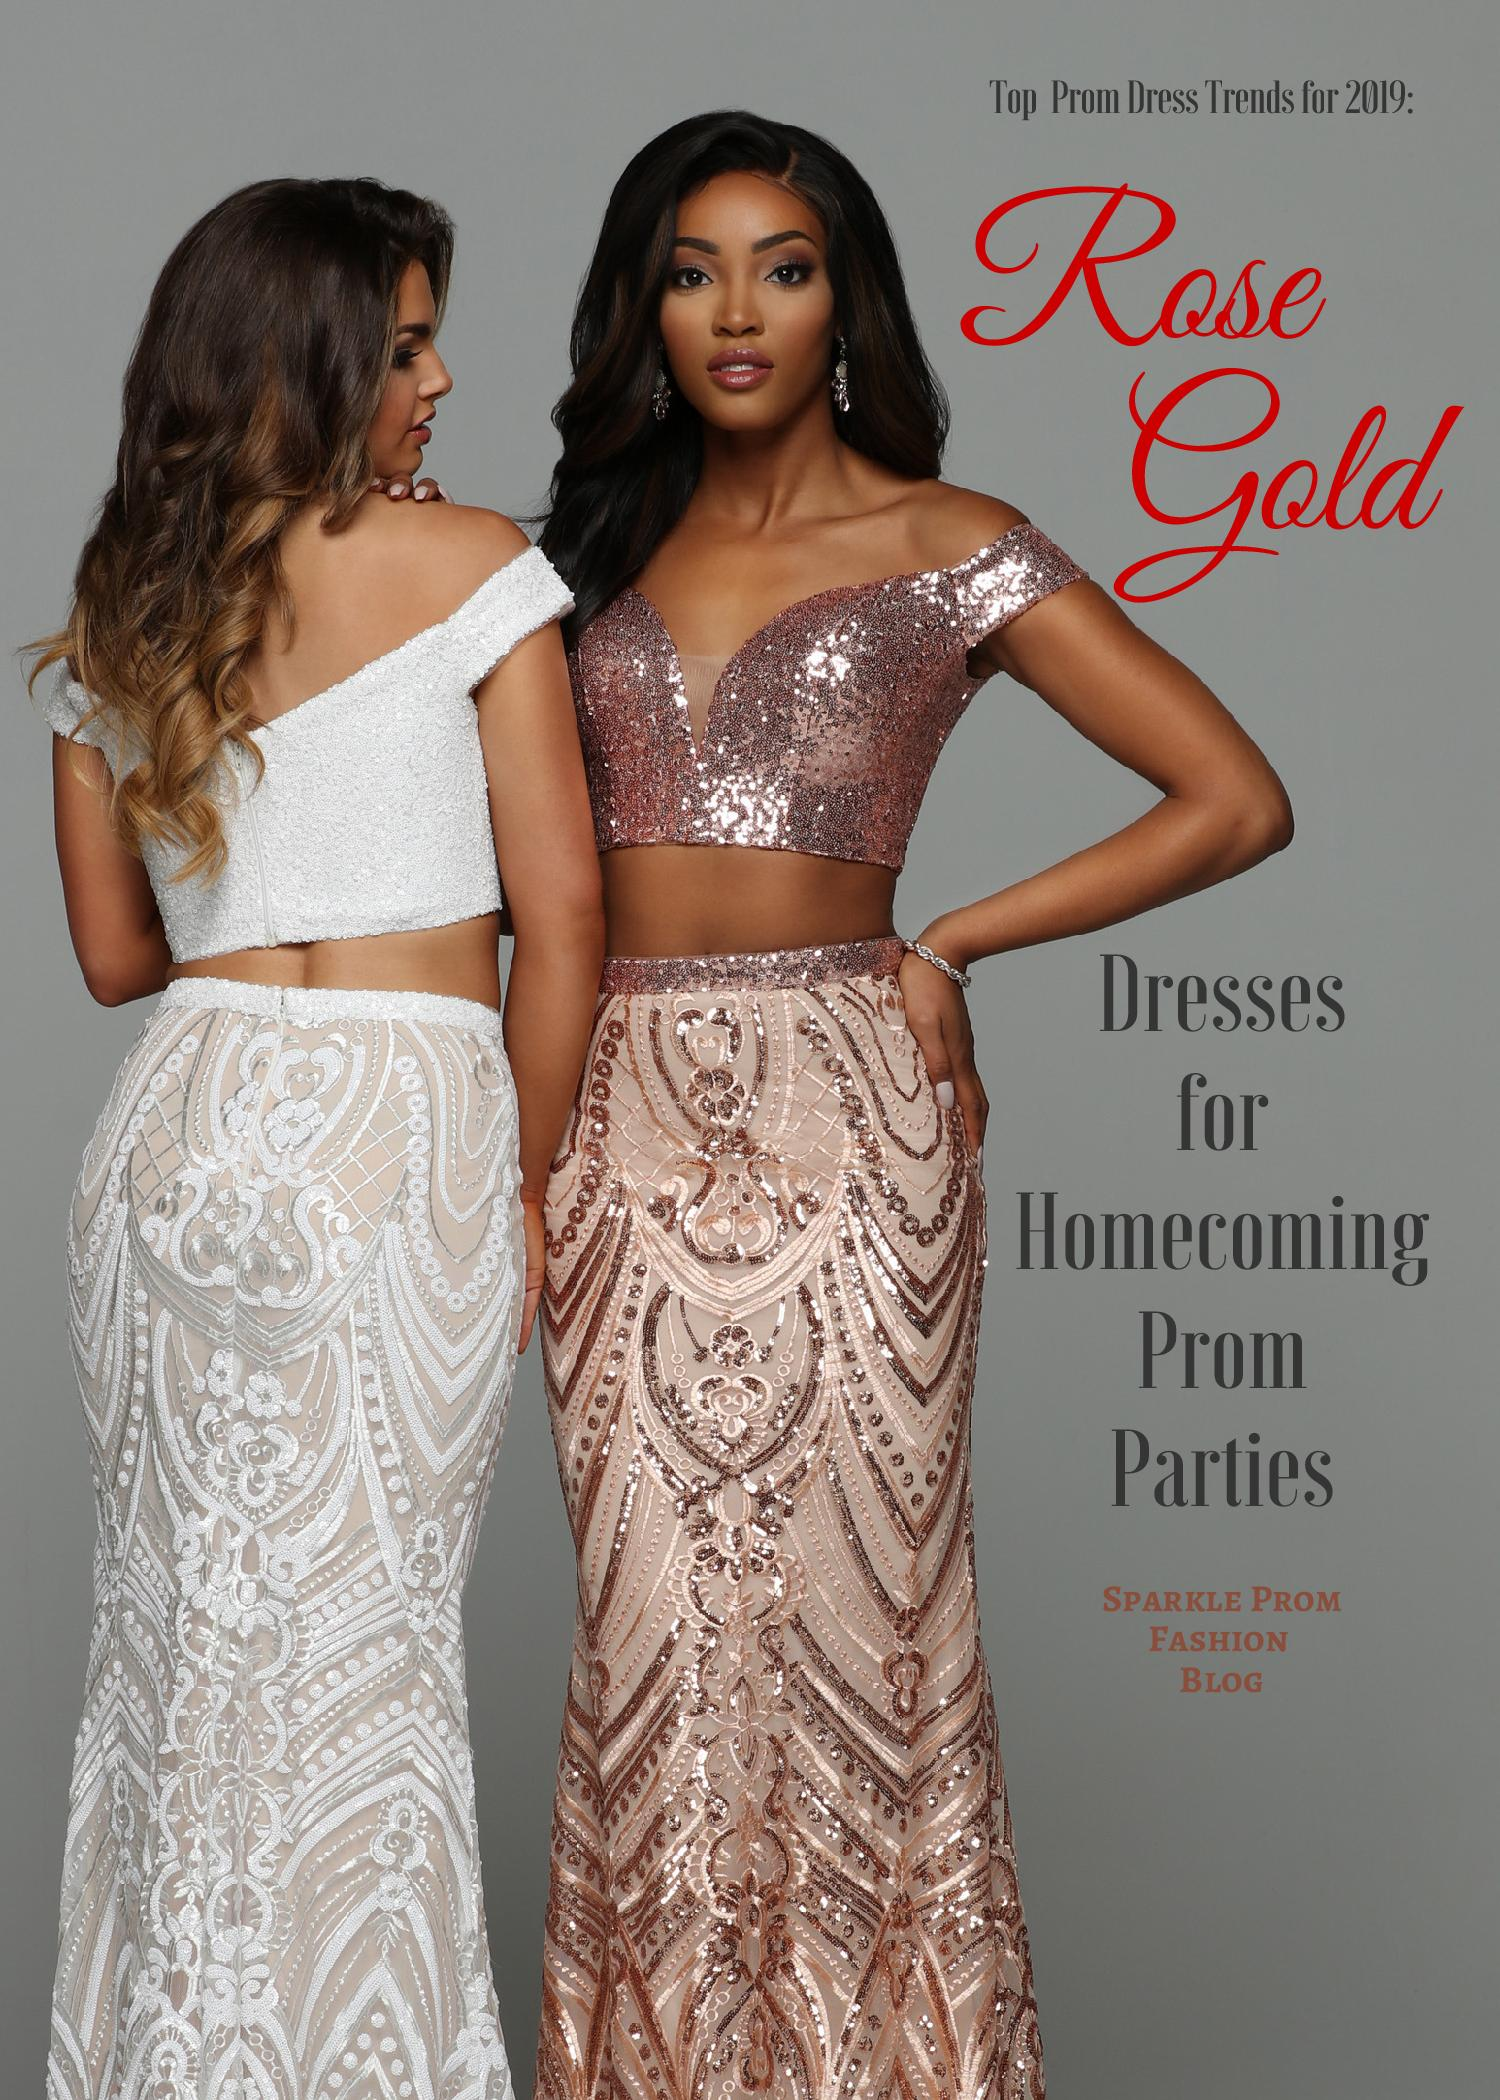 Top Prom Dress Trends For 2019 Rose Gold Prom Dresses Sparkle Prom